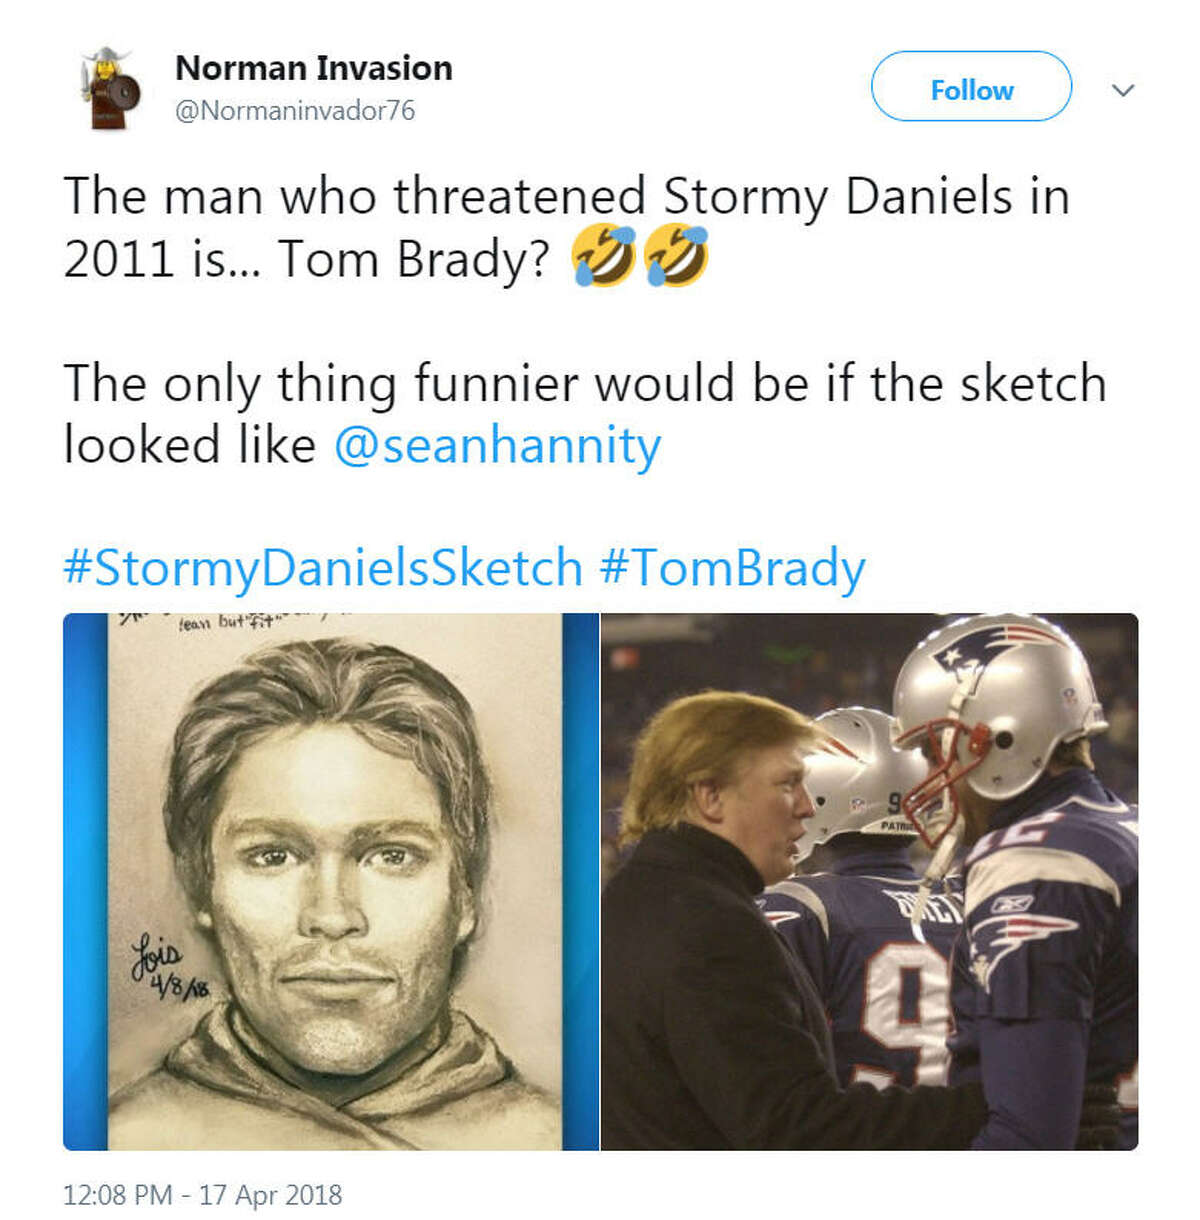 A sketch of the man who adult film actress Stormy Daniels said threatened her in a Las Vegas parking lot in 2011 about her alleged affair with President Donald Trump was released on April 17, 2018. Twitter was quick to identify potential suspects.Image source: Twitter